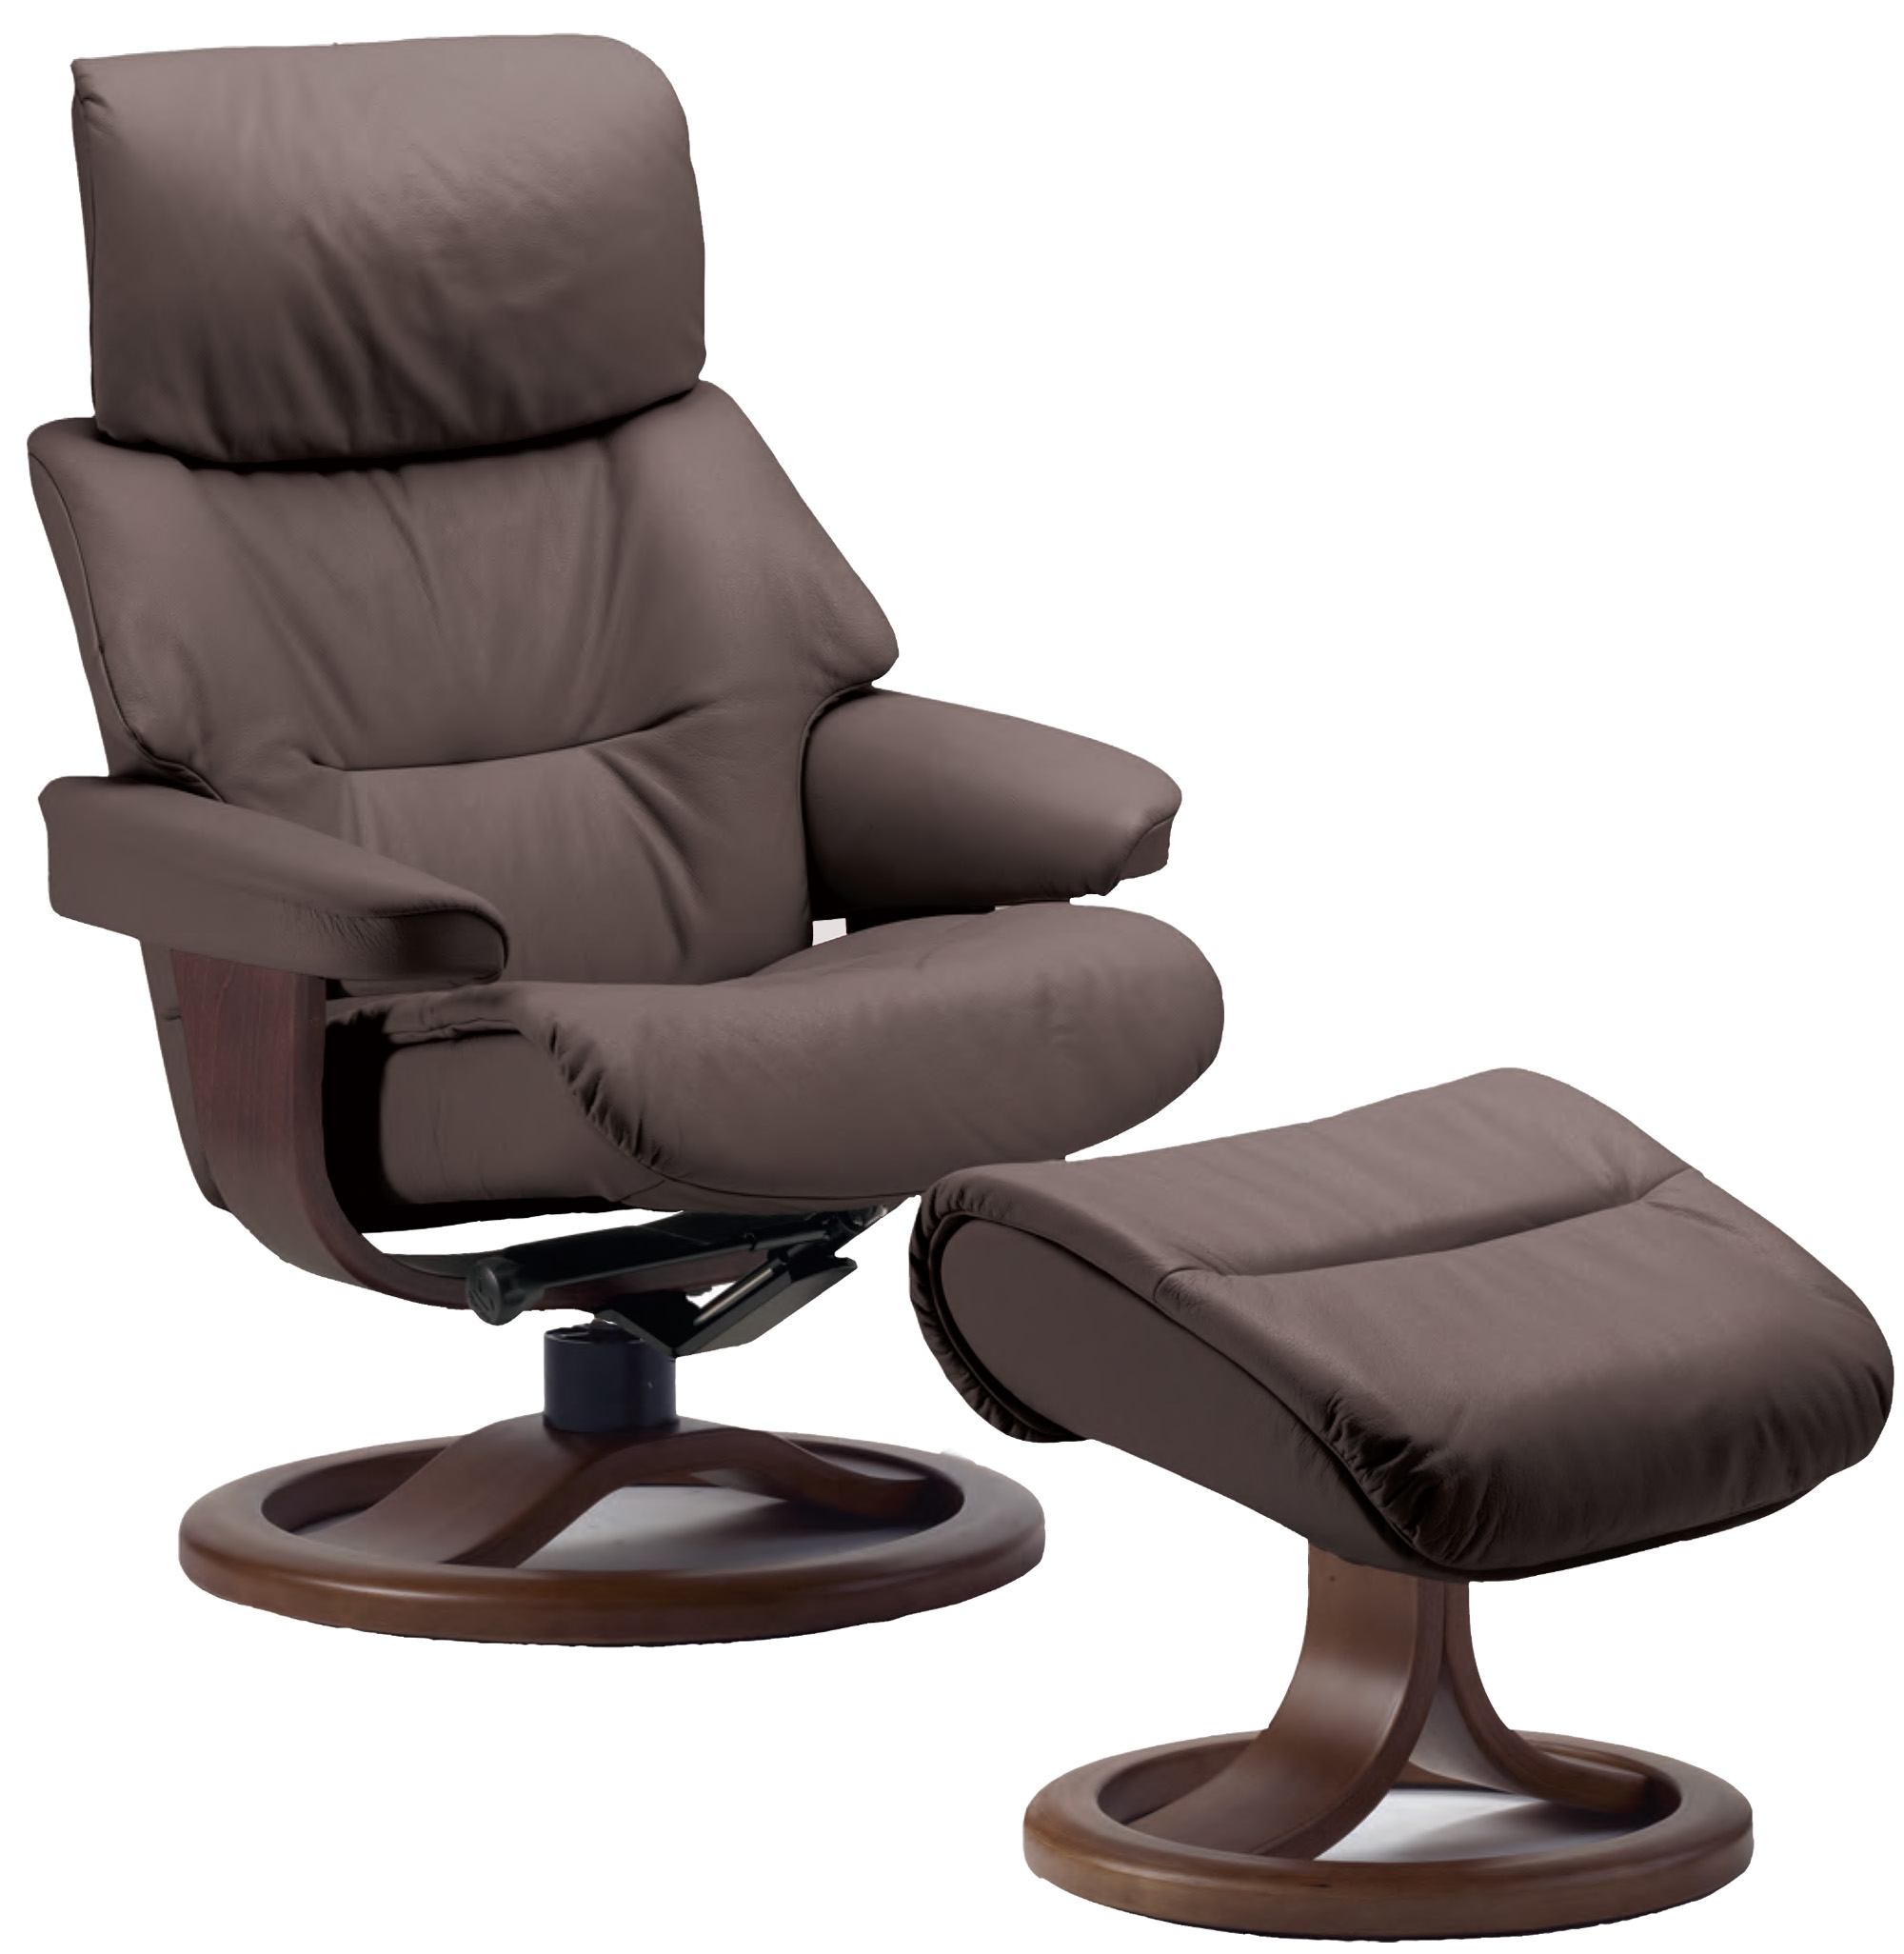 Incroyable Fjords Grip Leather Ergonomic Recliner Chair And Ottoman Scandinavian  Lounger